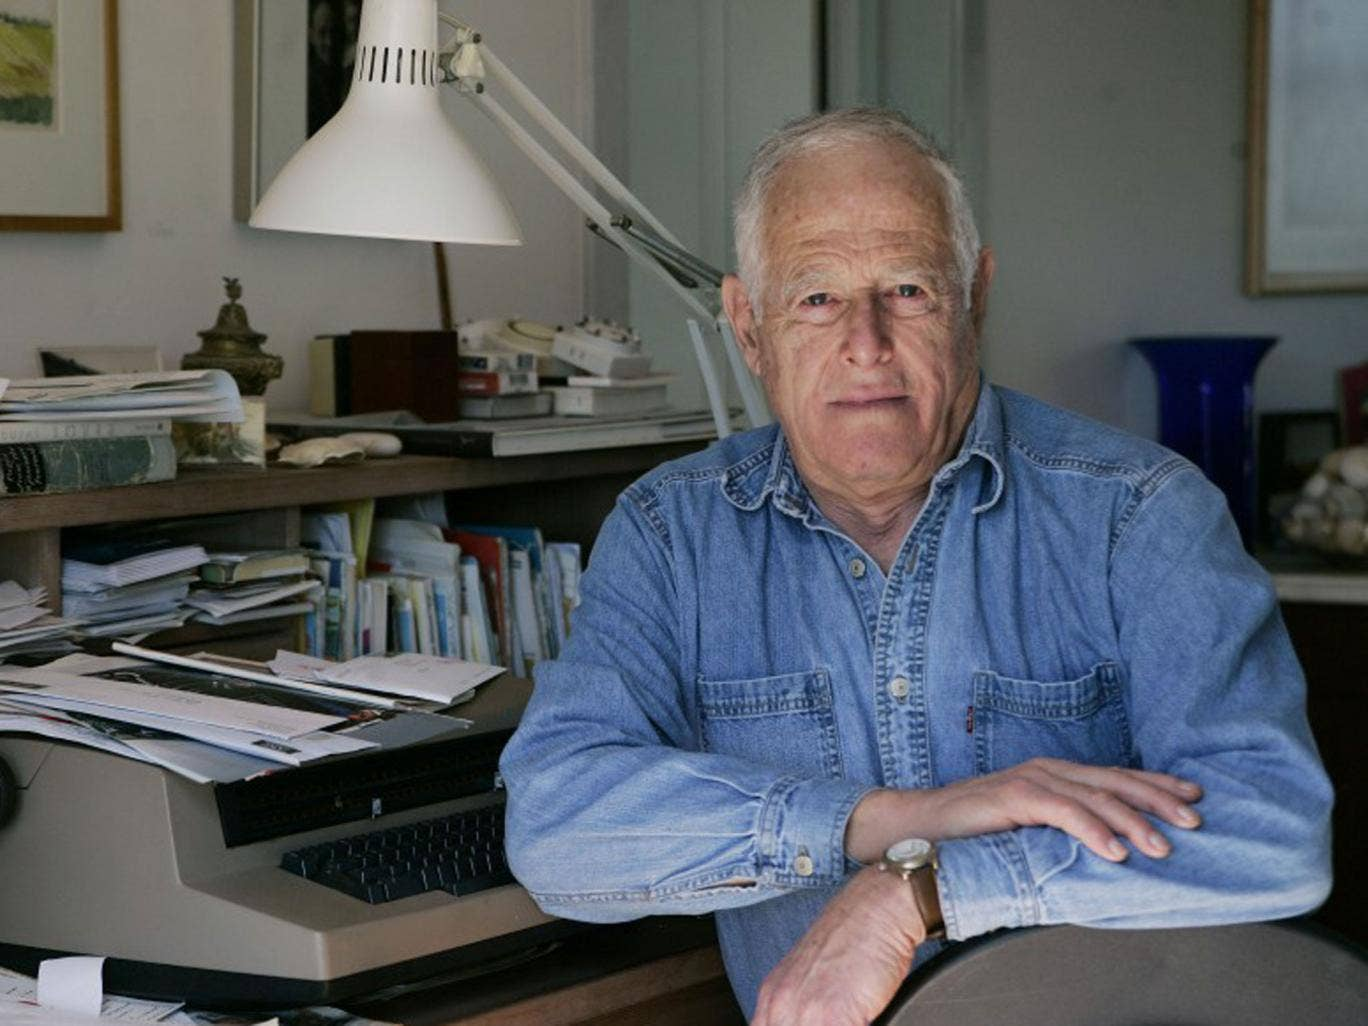 James Salter: Tears up the creative writing rulebook